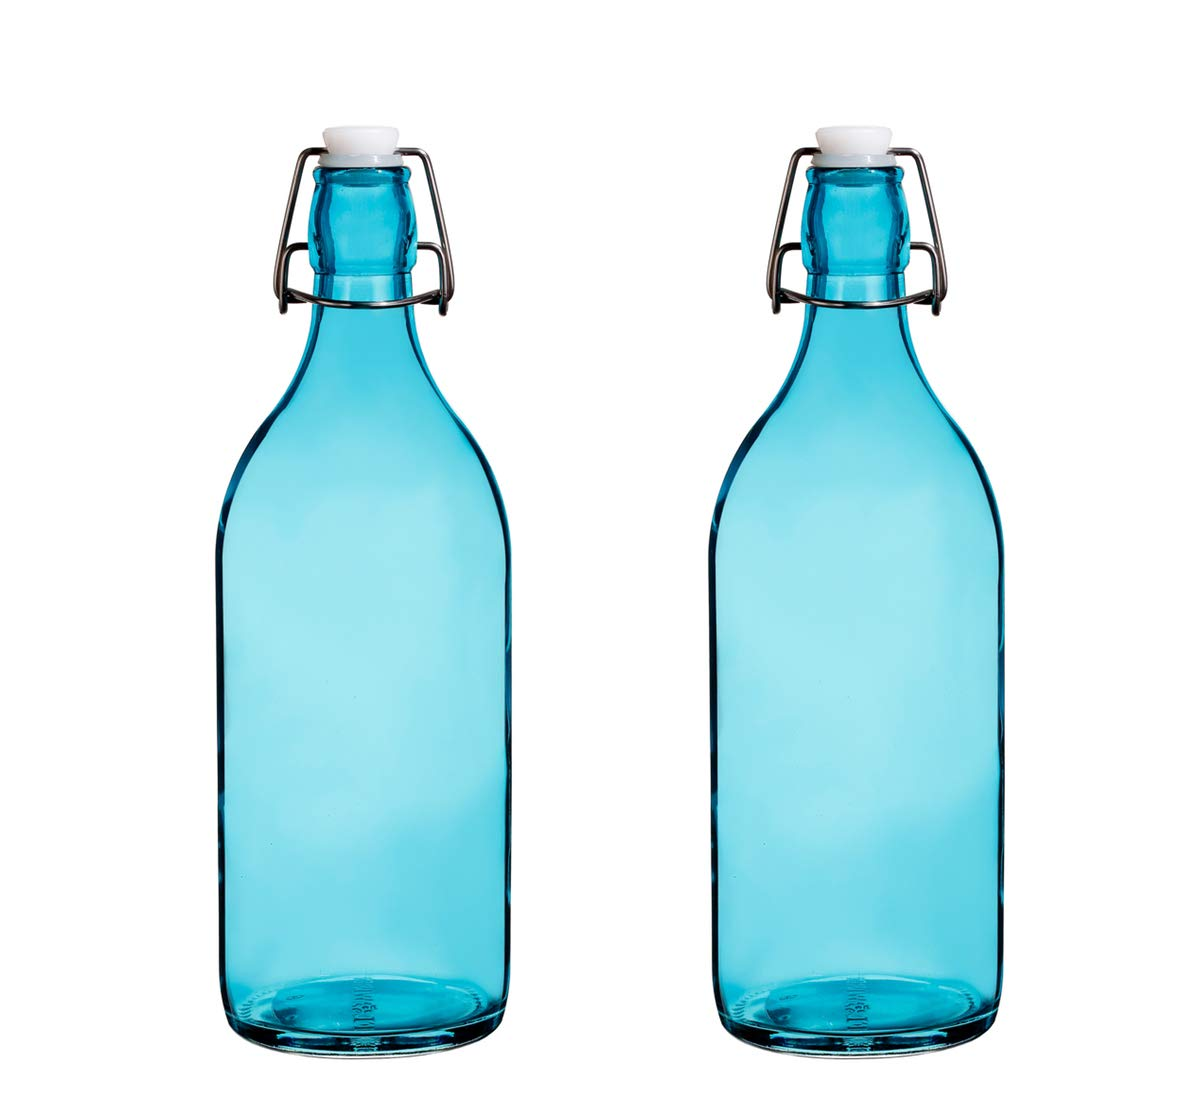 Set Of 2, Colorful Reusable Glass Water Bottles With Swing Top Leakproof Cap, 1L/34oz, Flowersea Glasss Water Bottle for Home Brewer, Beverages, Fridge, Kombucha,Water, Beer (Blue, Round)